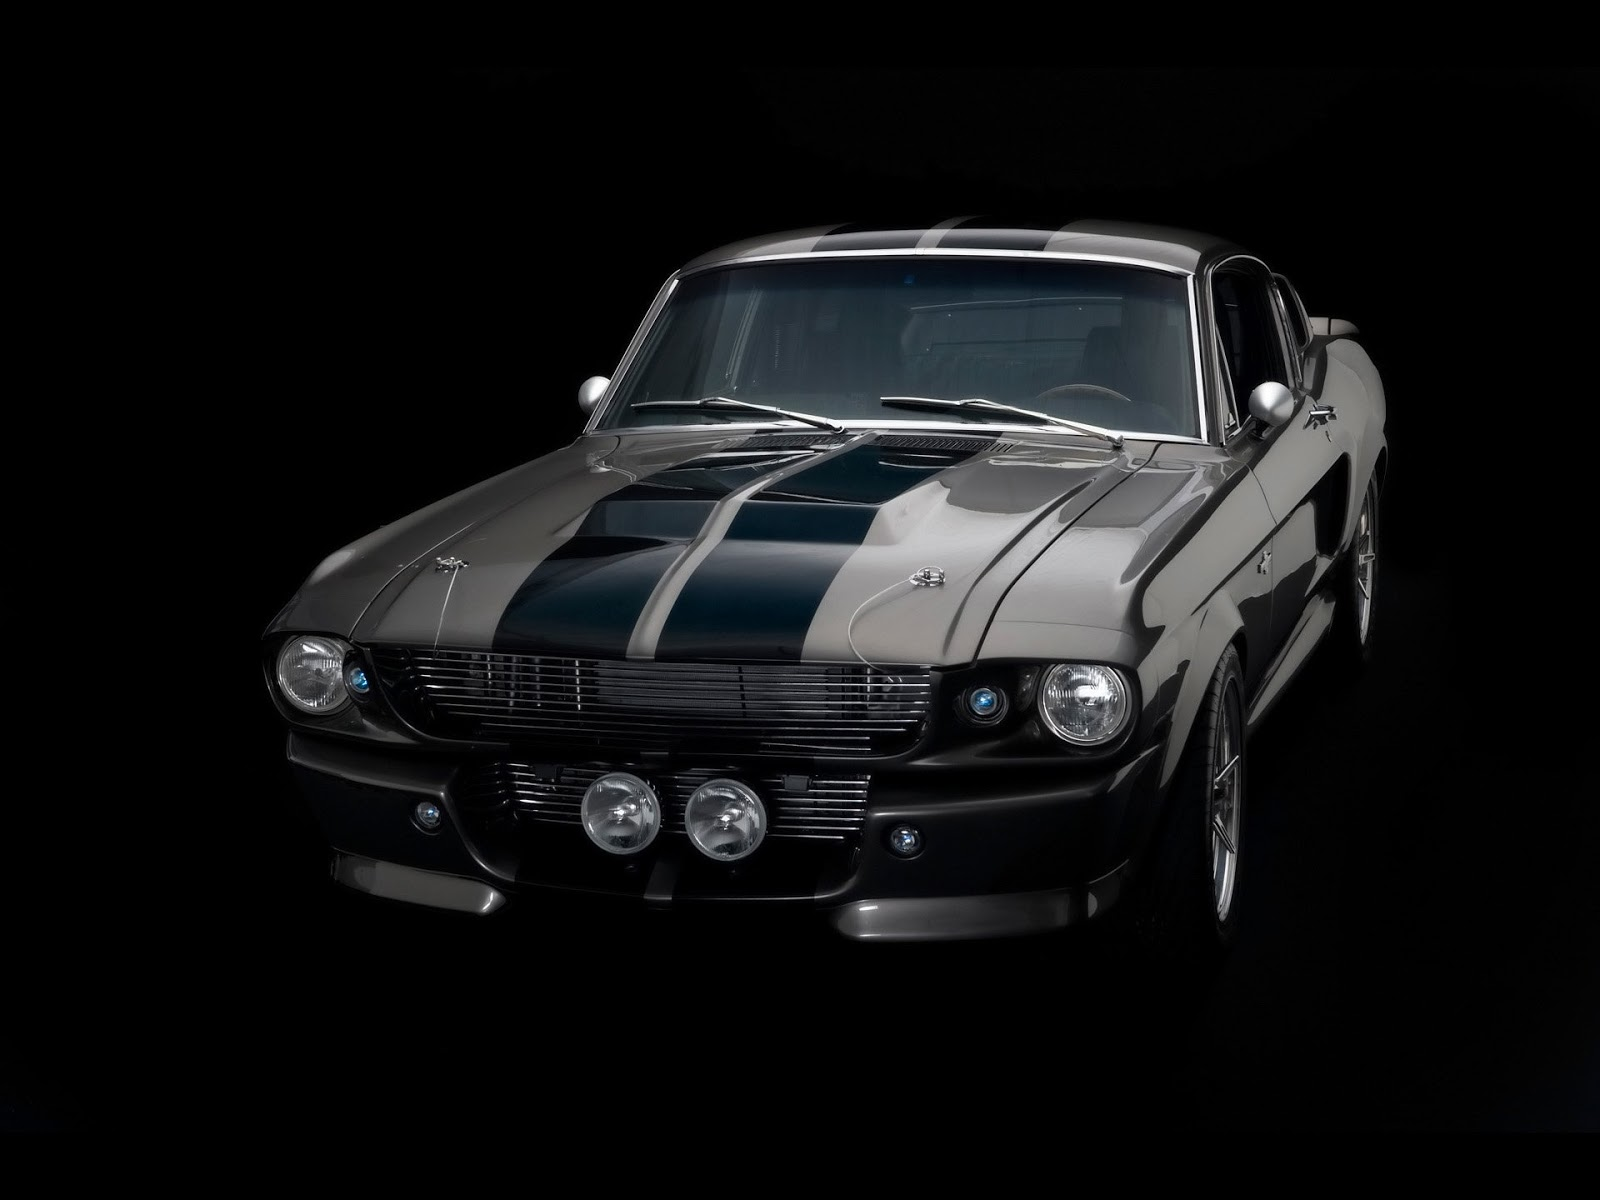 TOP 10 MUSCLE CARS | The Substantiation